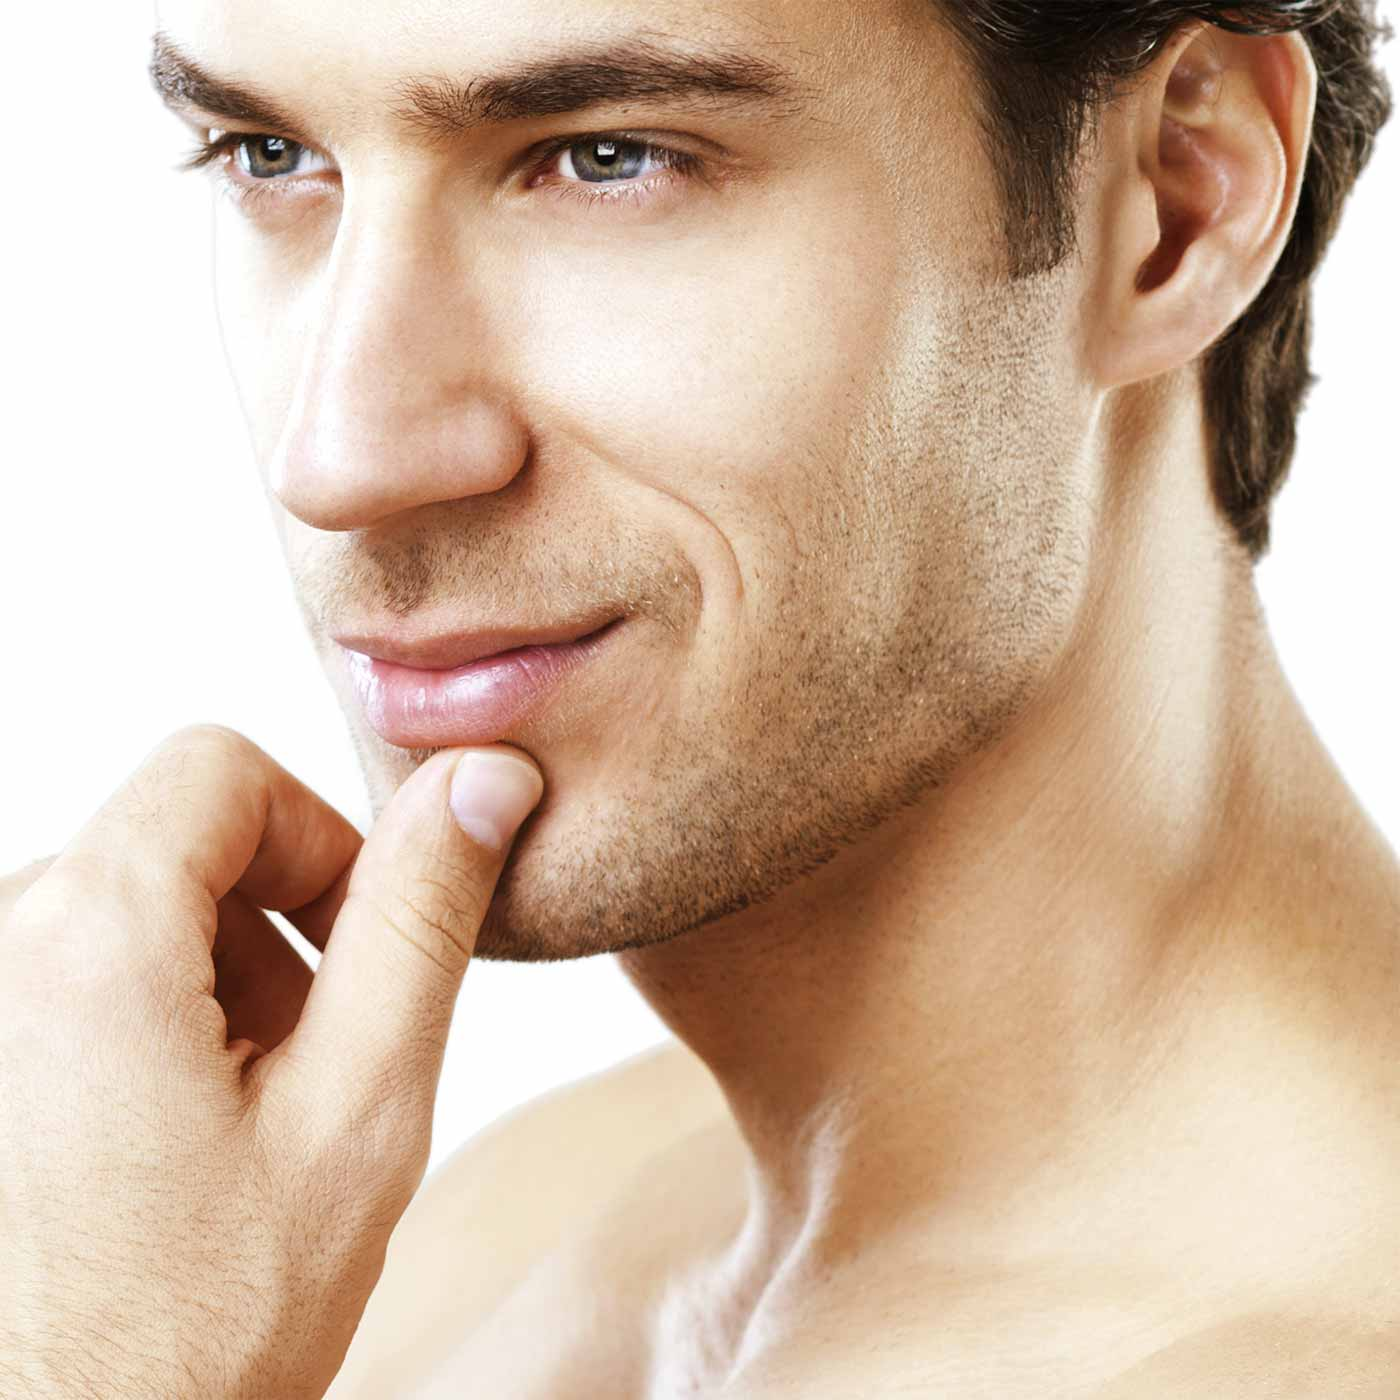 Men's grooming – How to remove facial hair | Nad's Hair Removal Blog